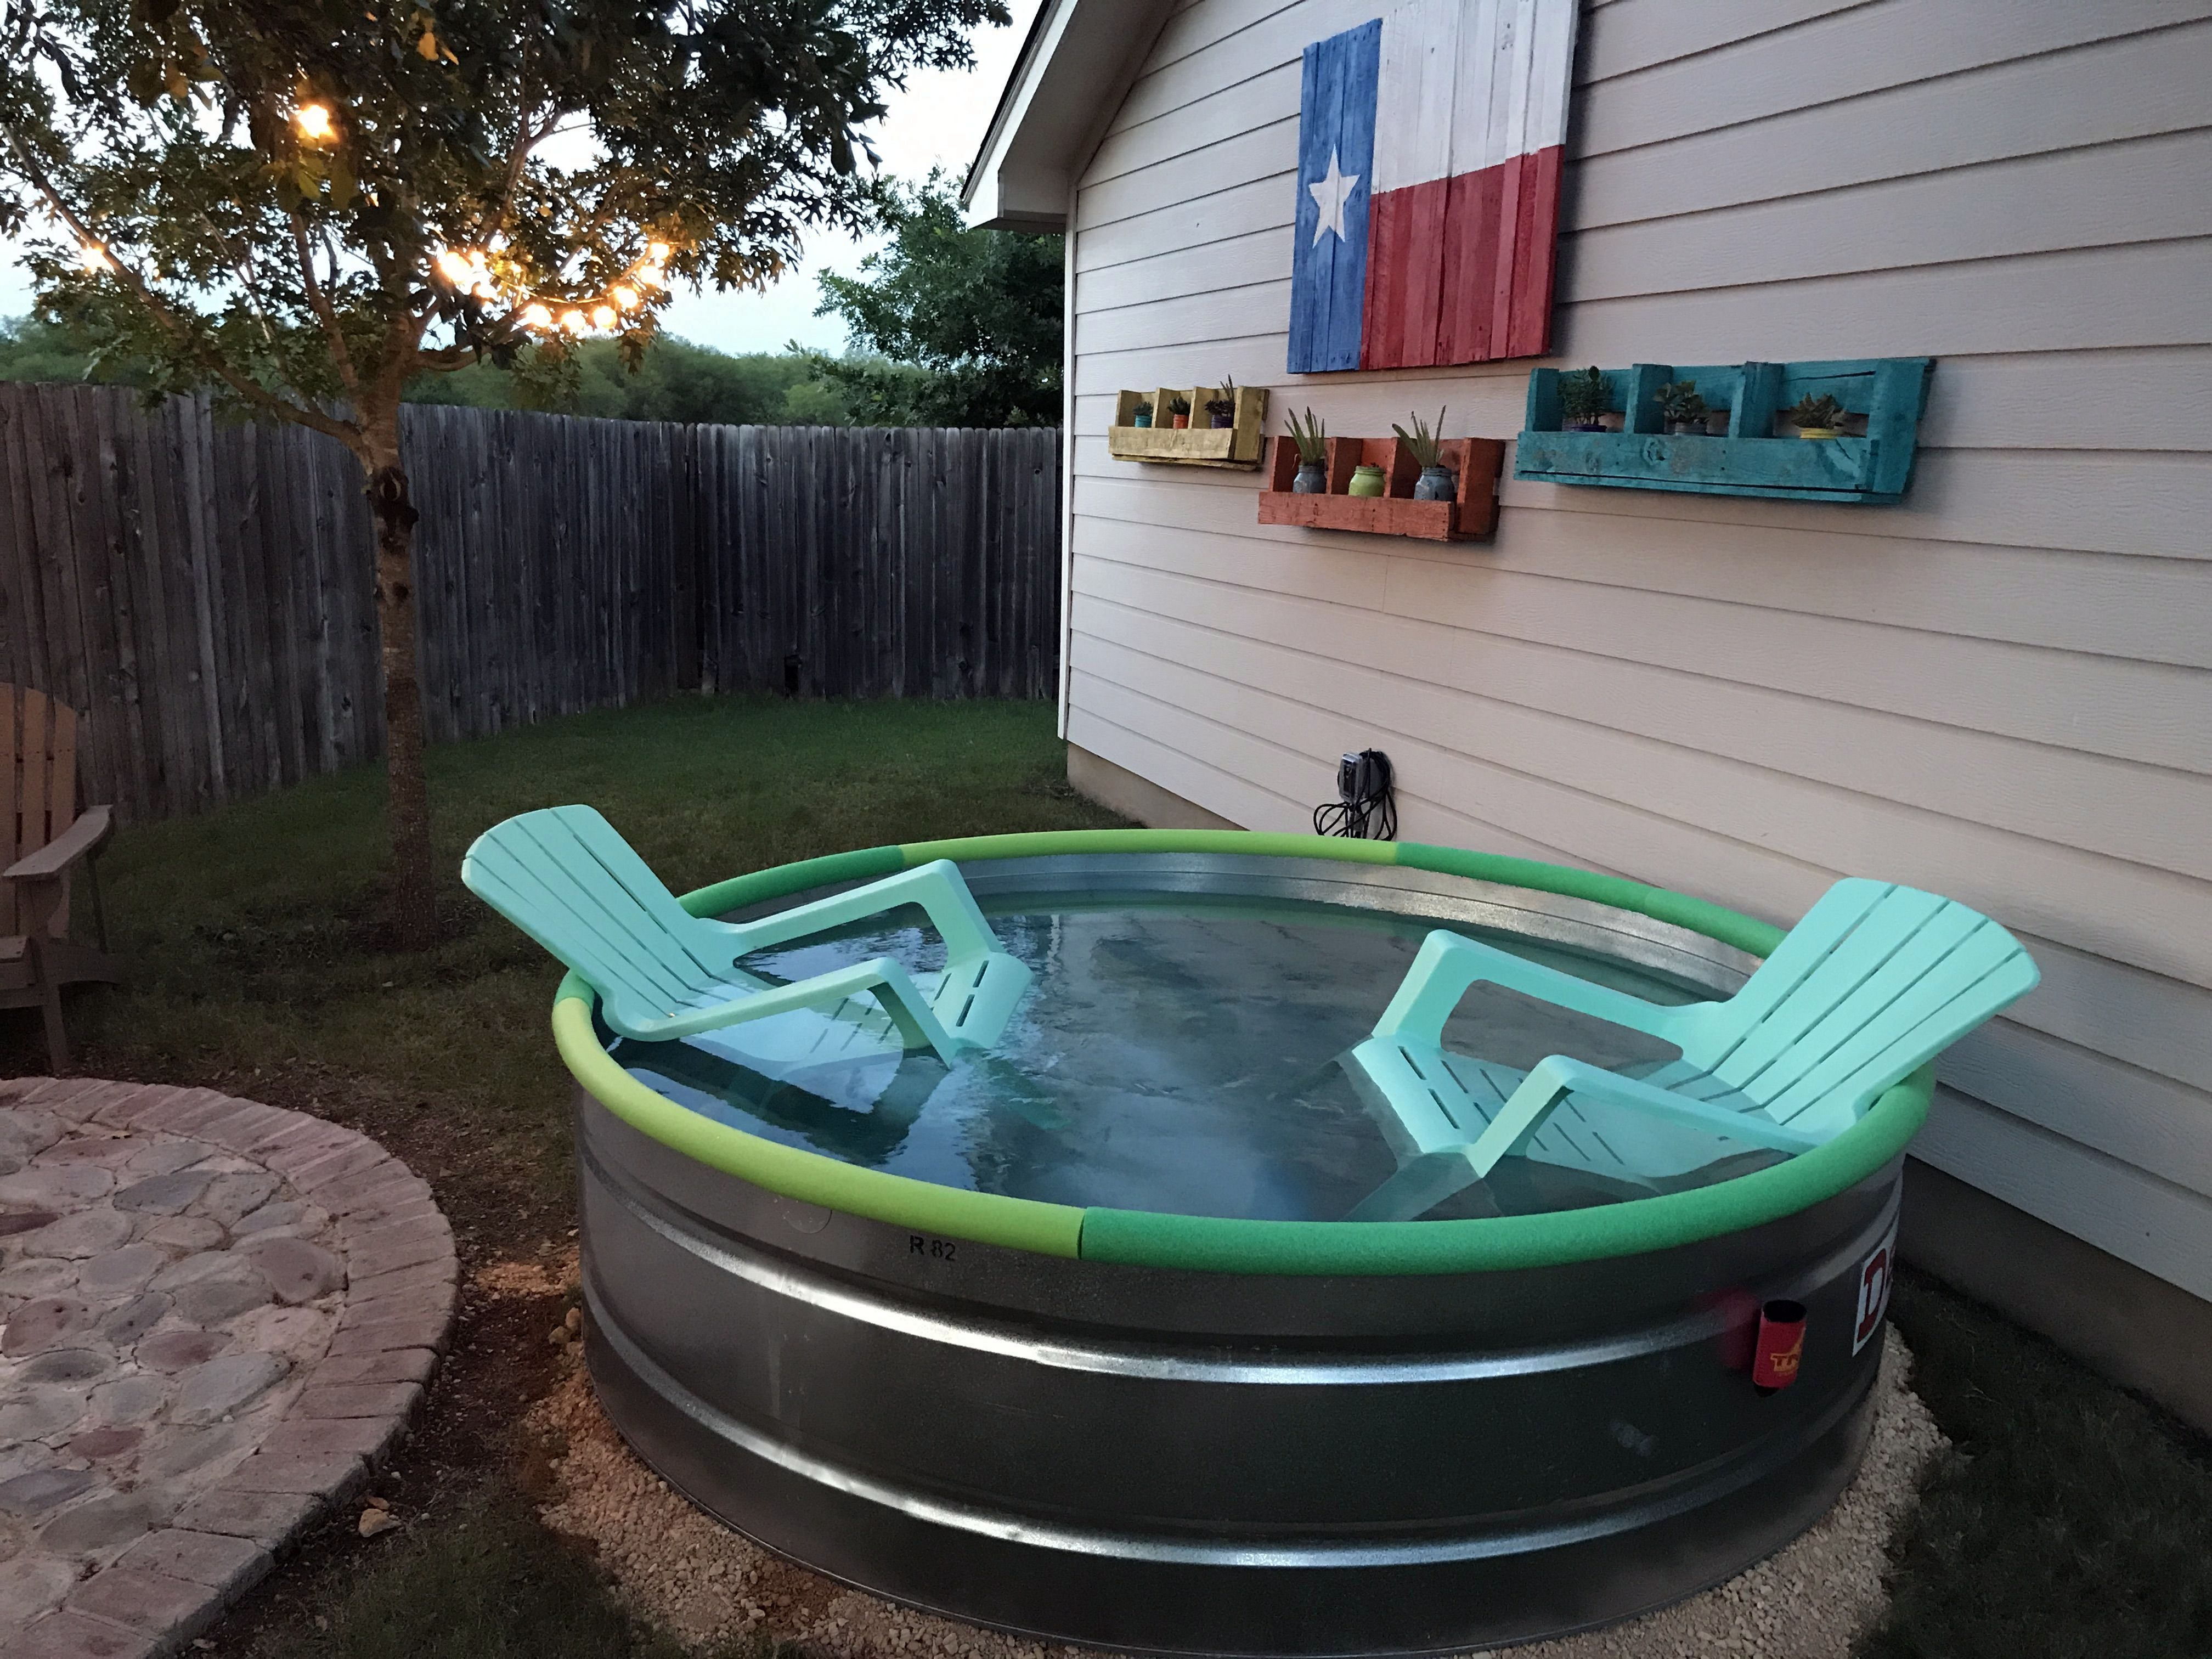 8 Best Stock Tank Pool Ideas For Your Backyard Tank Pool Stock Tank Pool Diy Stock Tank